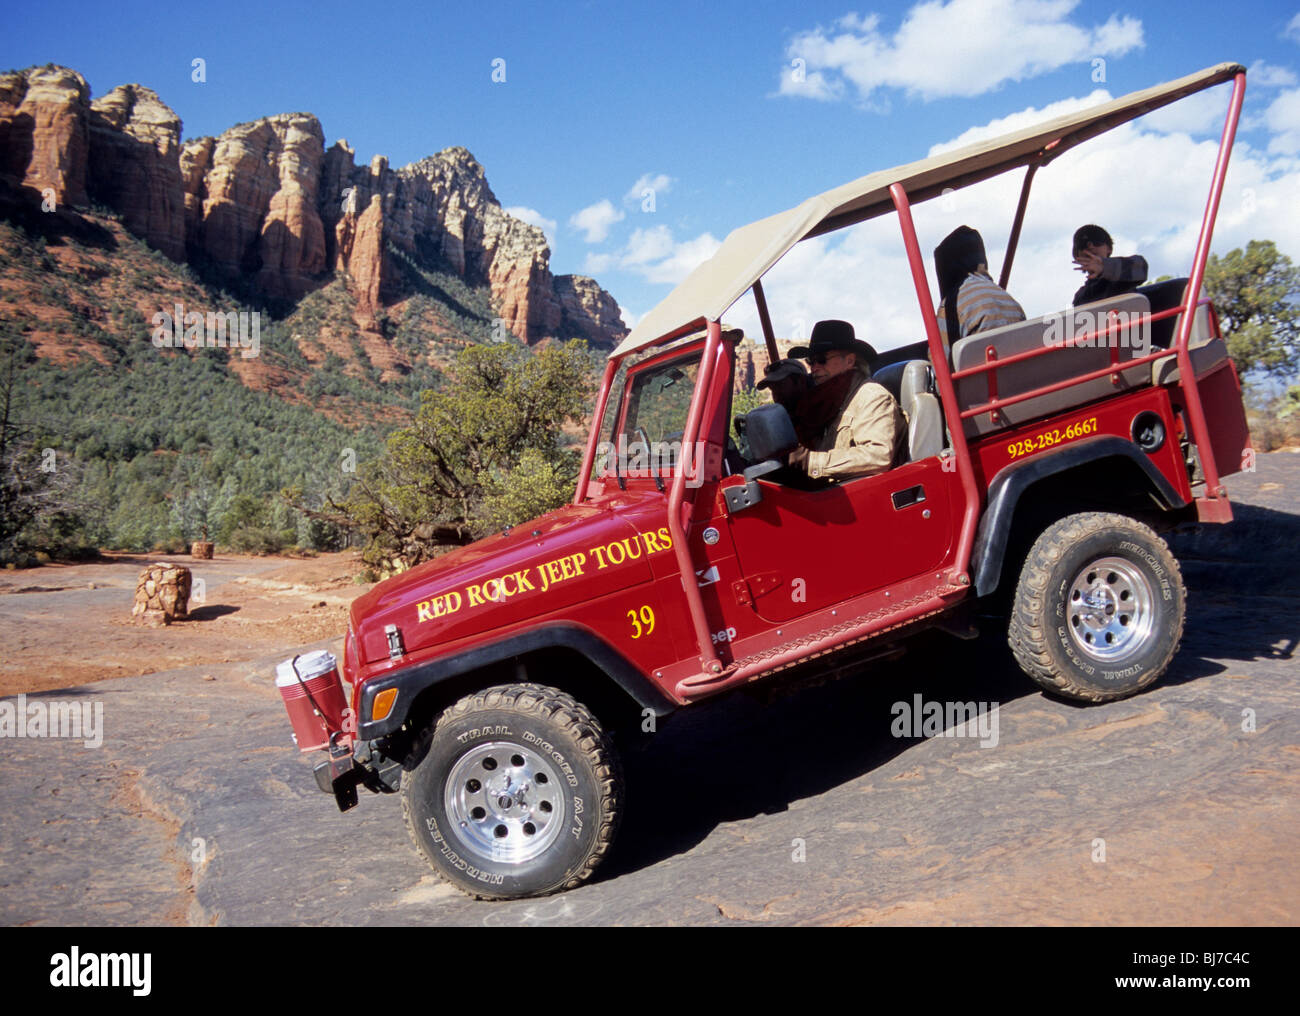 Red Rock Jeep Tours Vehicle Explores Sedona